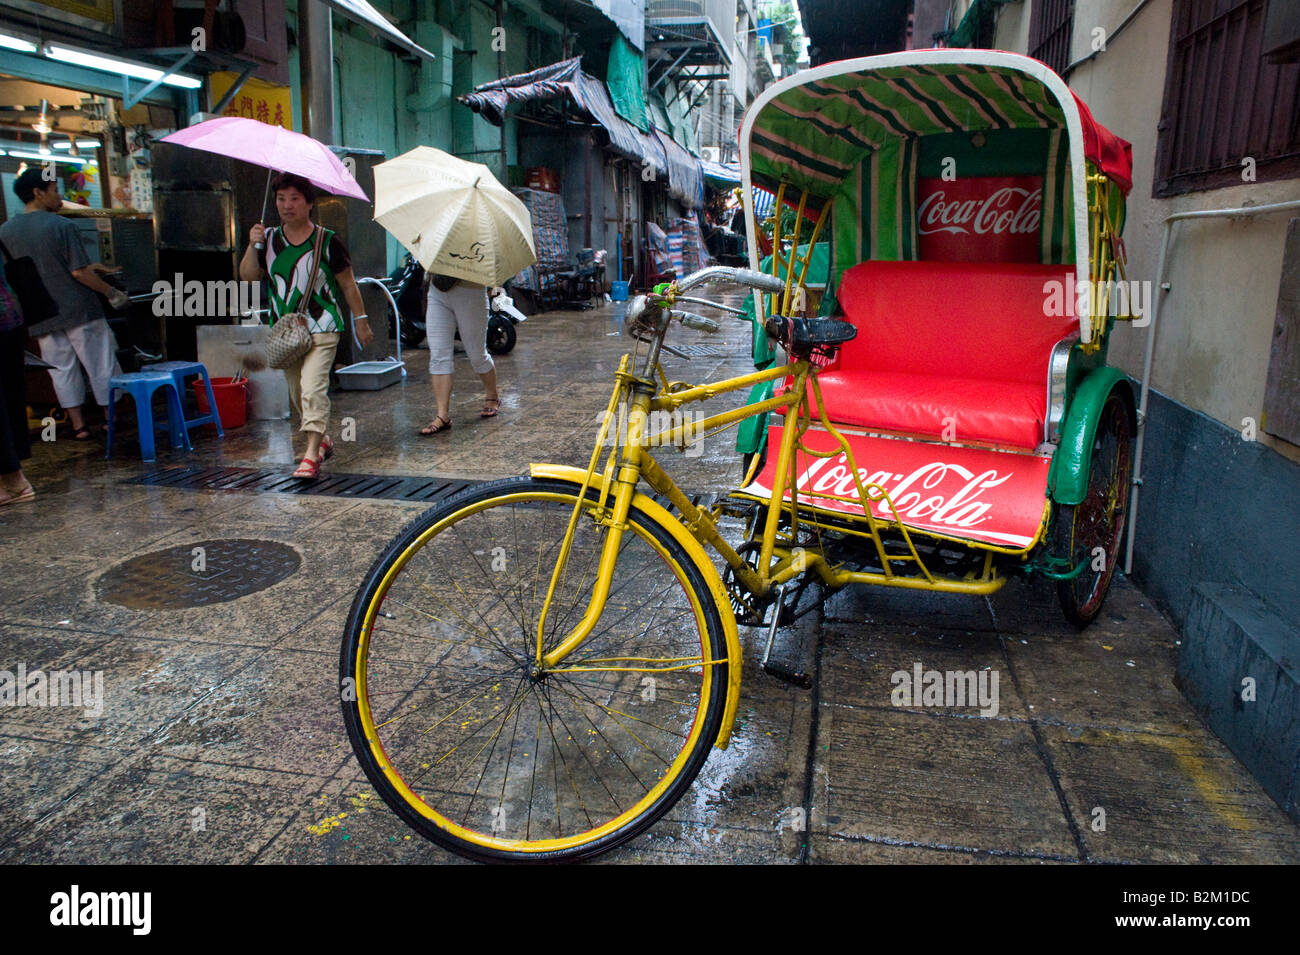 Tricycle traditionnel tricolo parqué dans street à Macao China 2008 Photo Stock